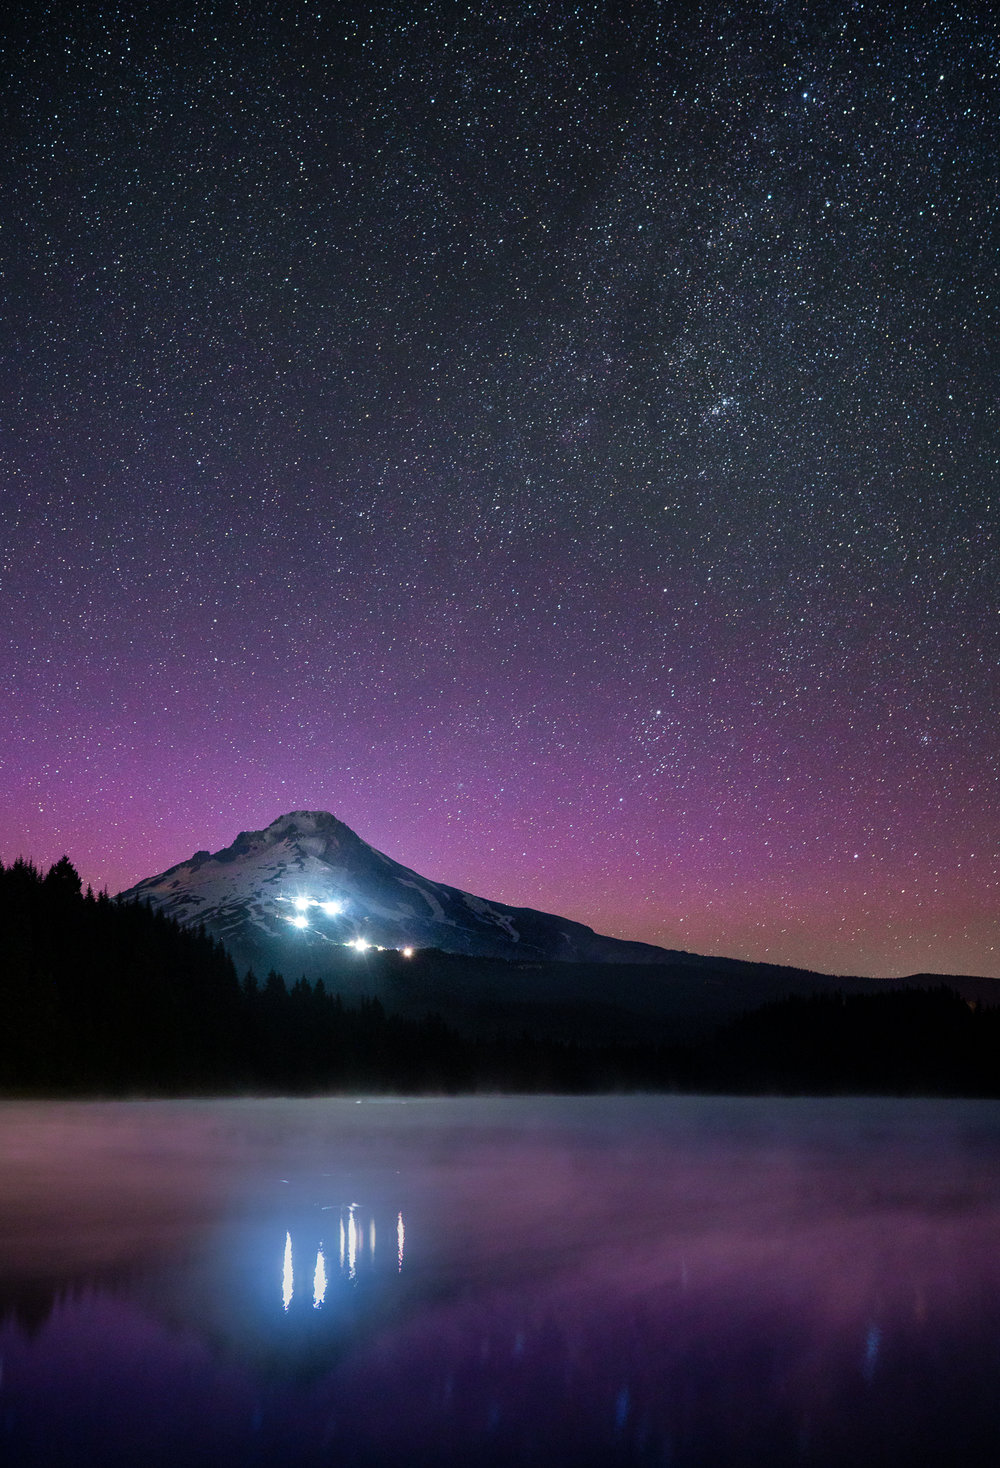 Trillium Lake Lights, Sony A7RII, Sony Zeiss Distagon 35mm f/1.4 , 20 sec, f/2.8, ISO 3200